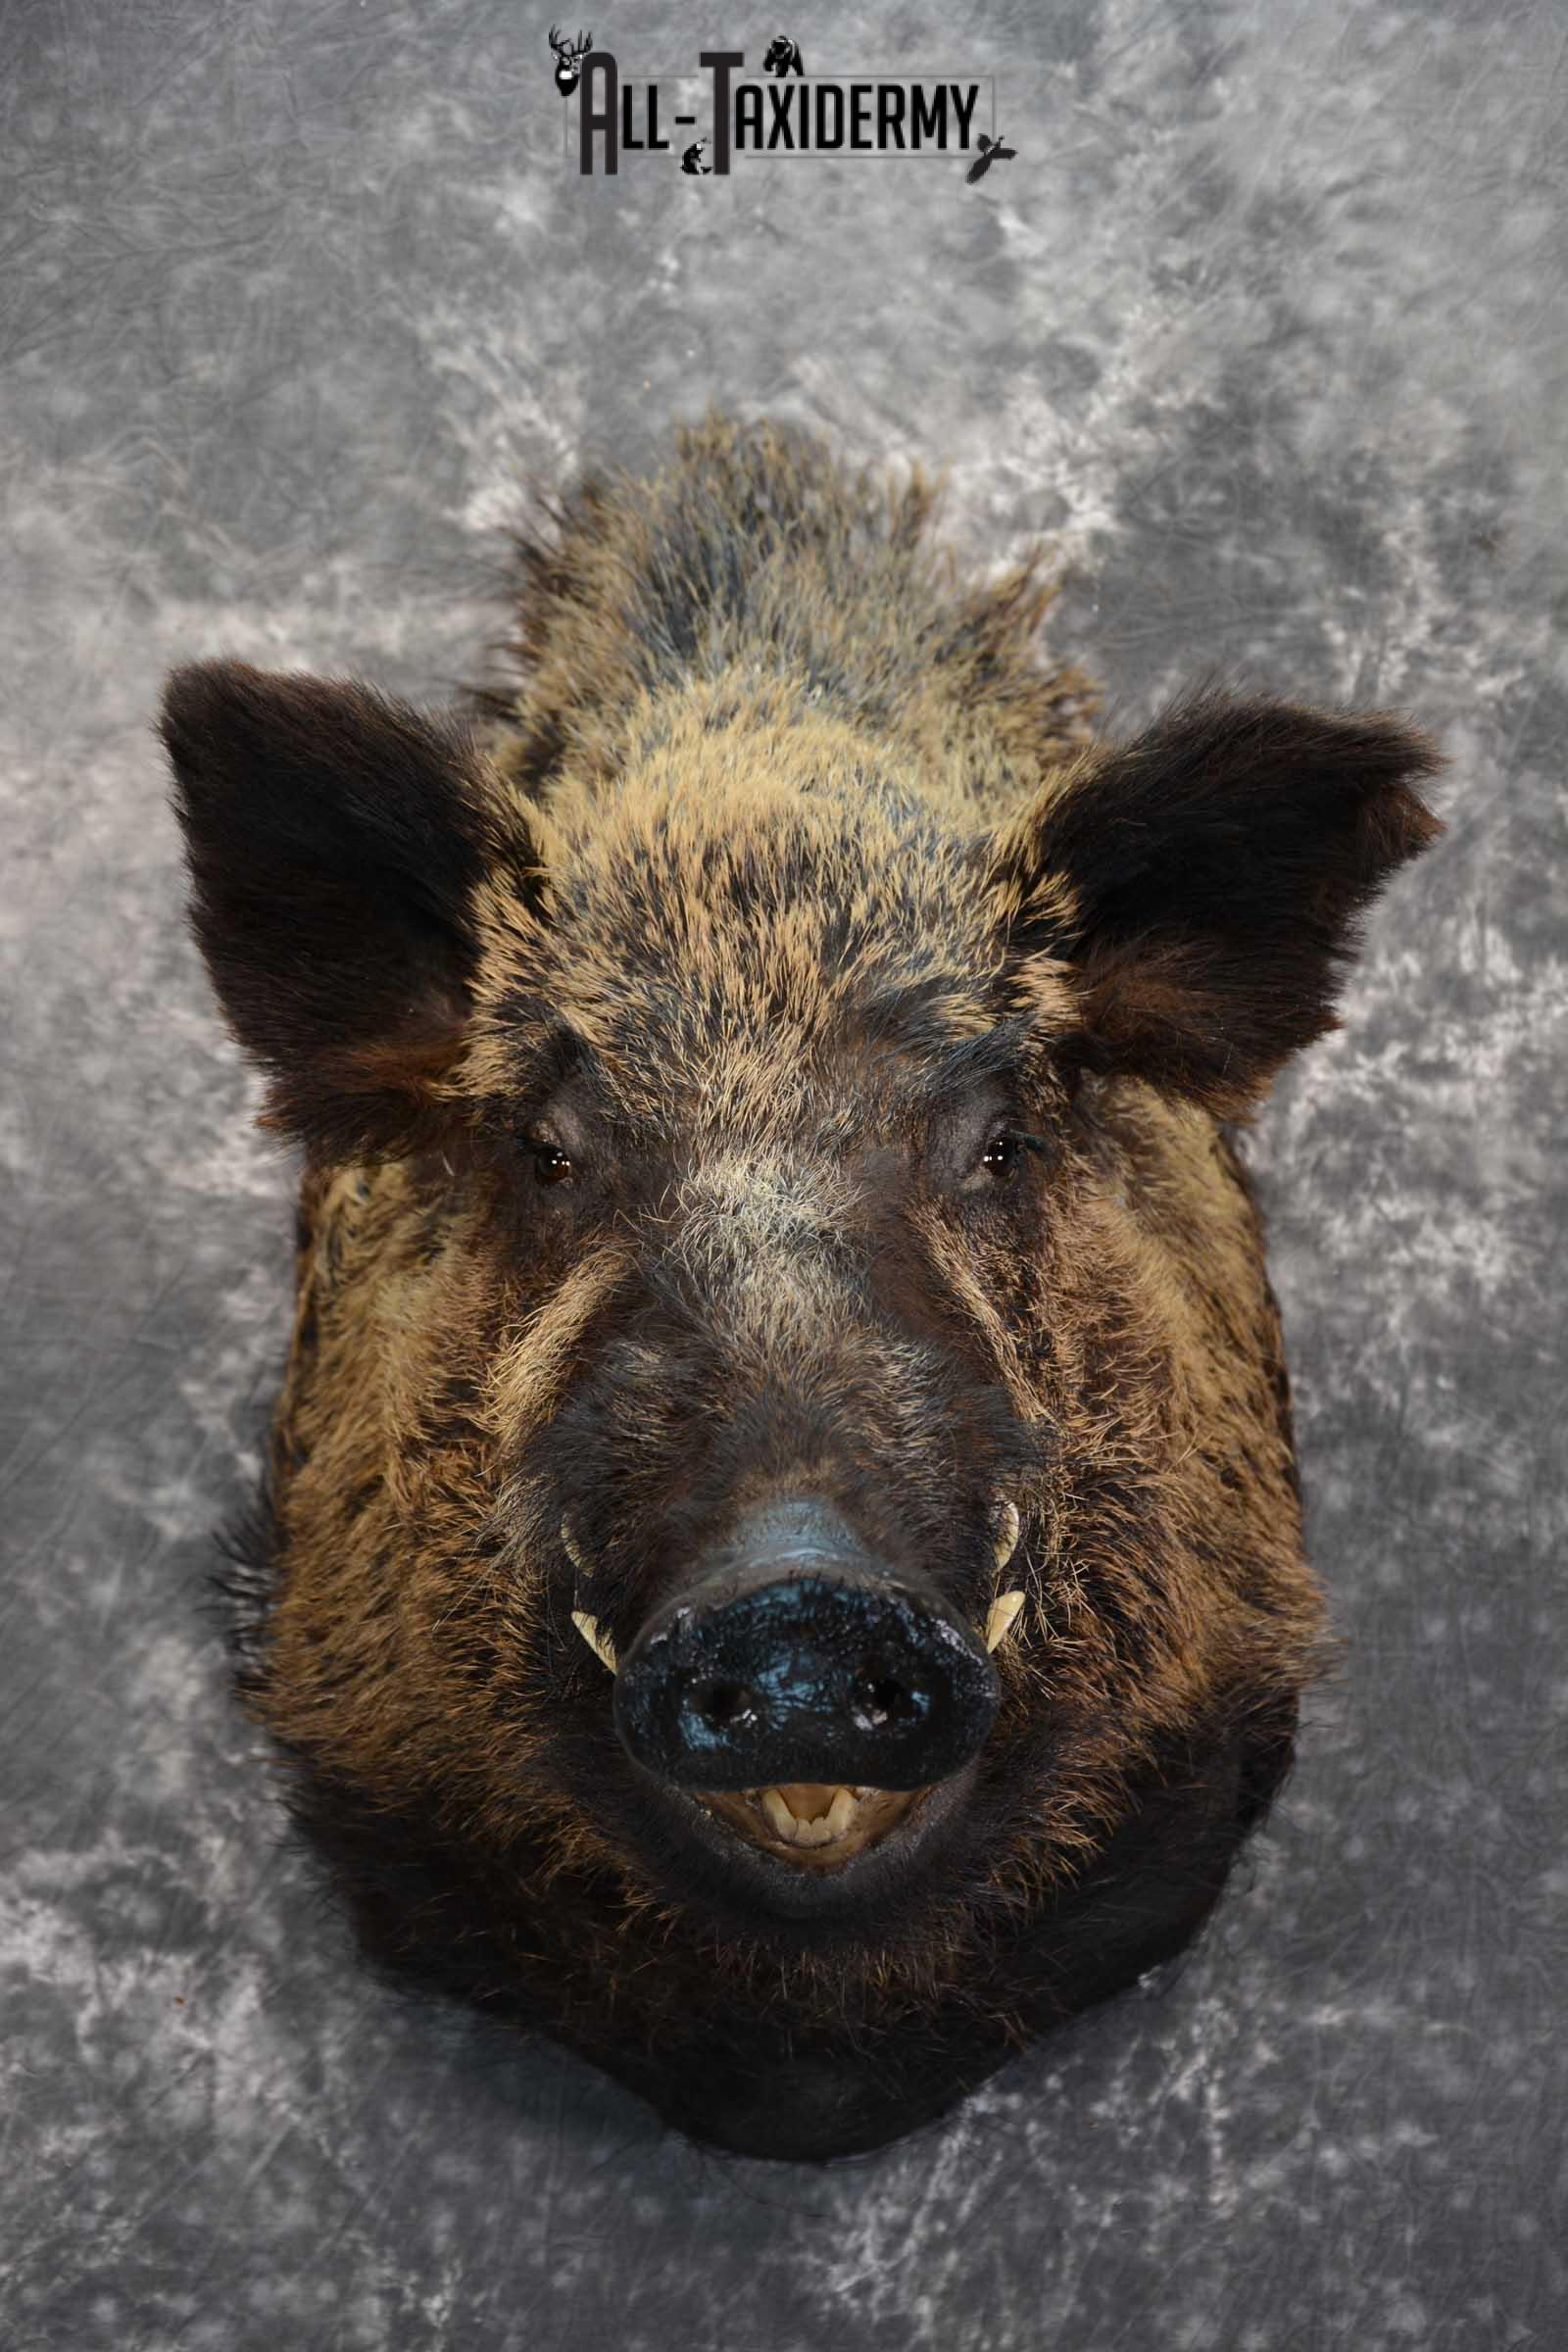 XXL Russian Boar taxidermy shoulder mount for sale SKU 1666